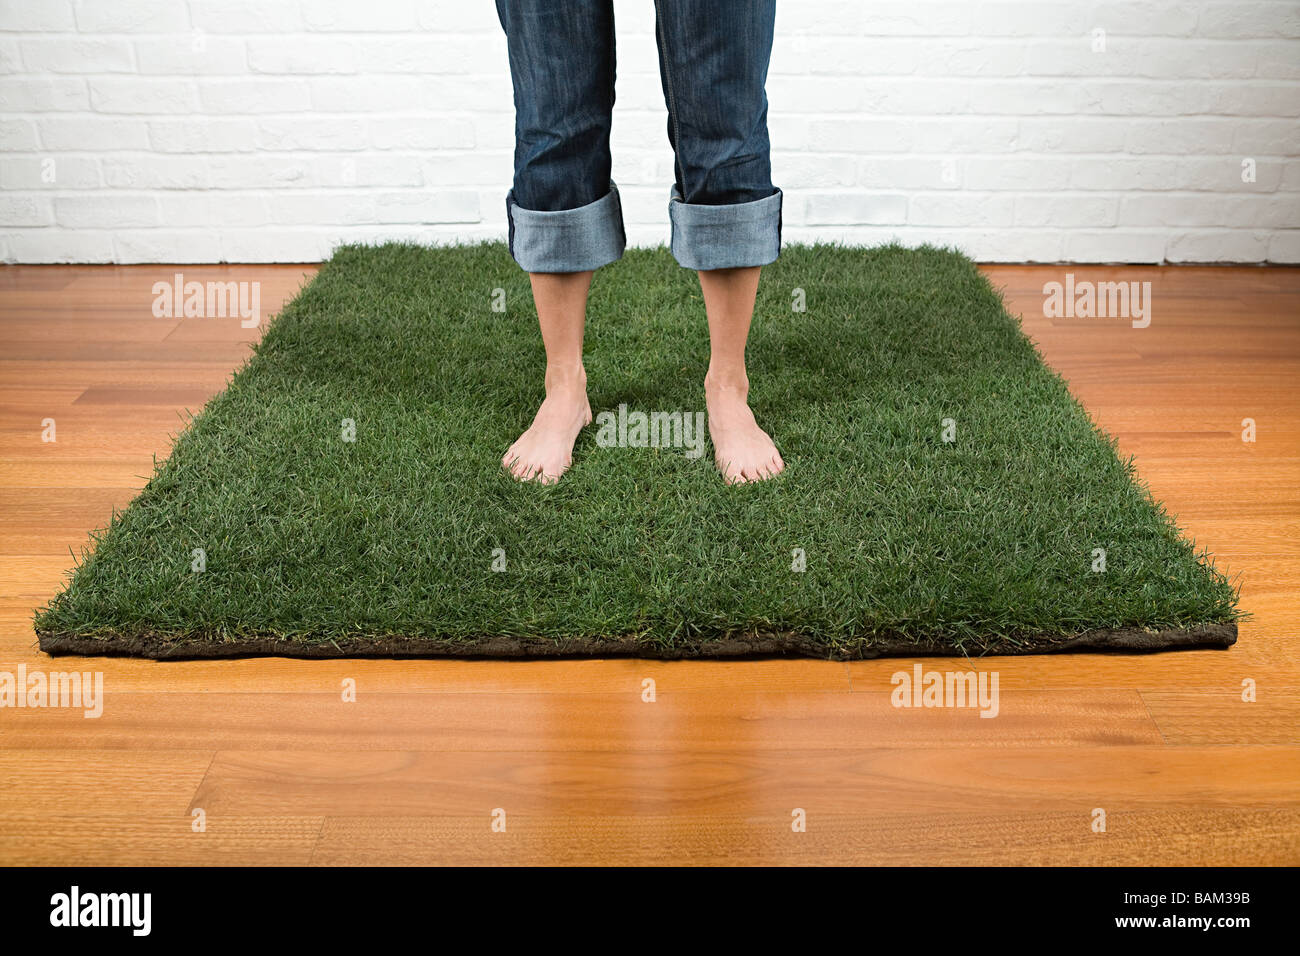 A woman standing on grass - Stock Image